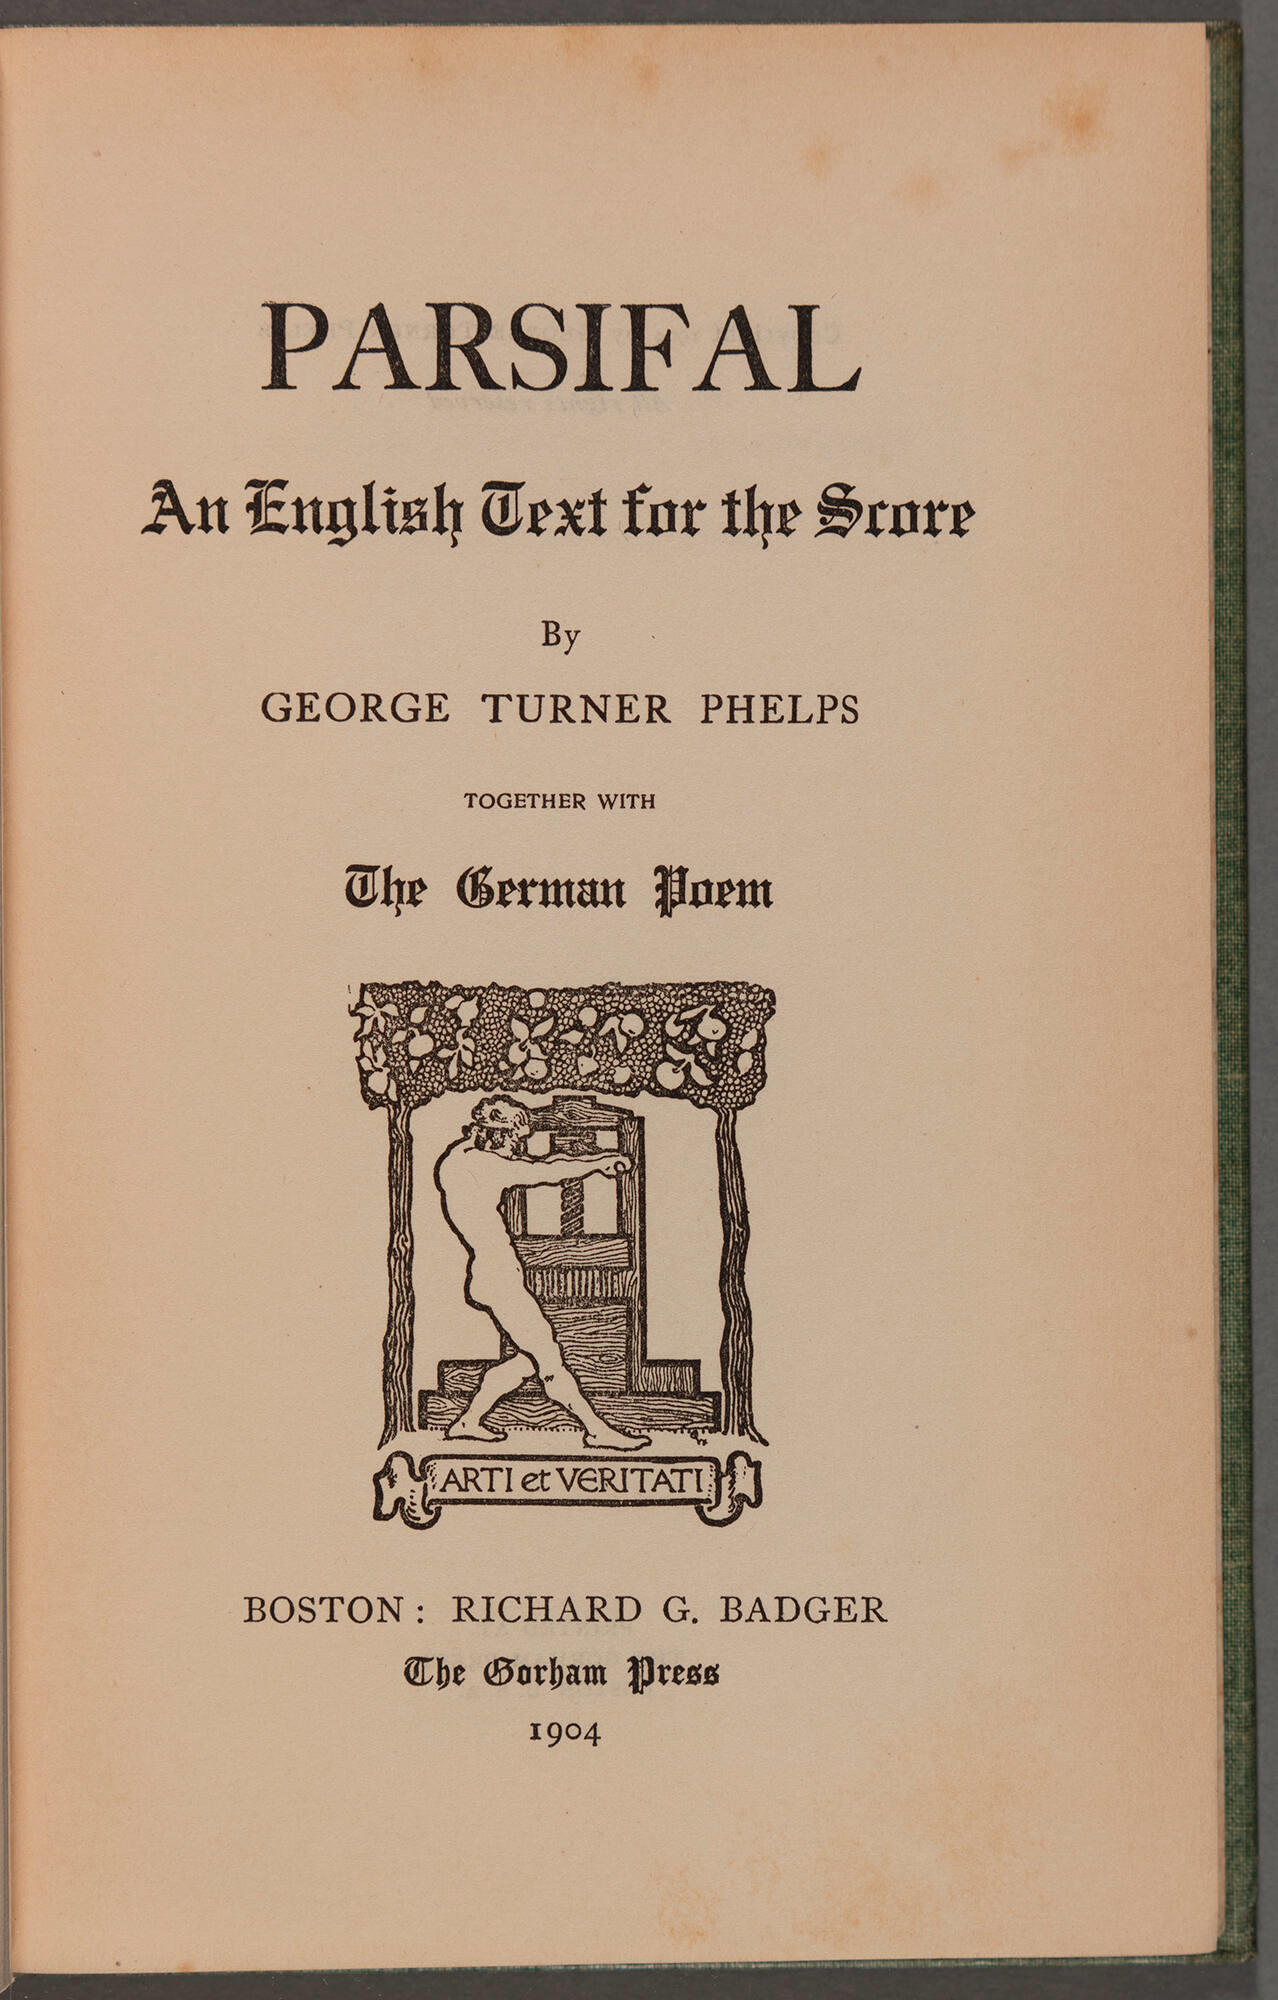 Parsival an English text title page.